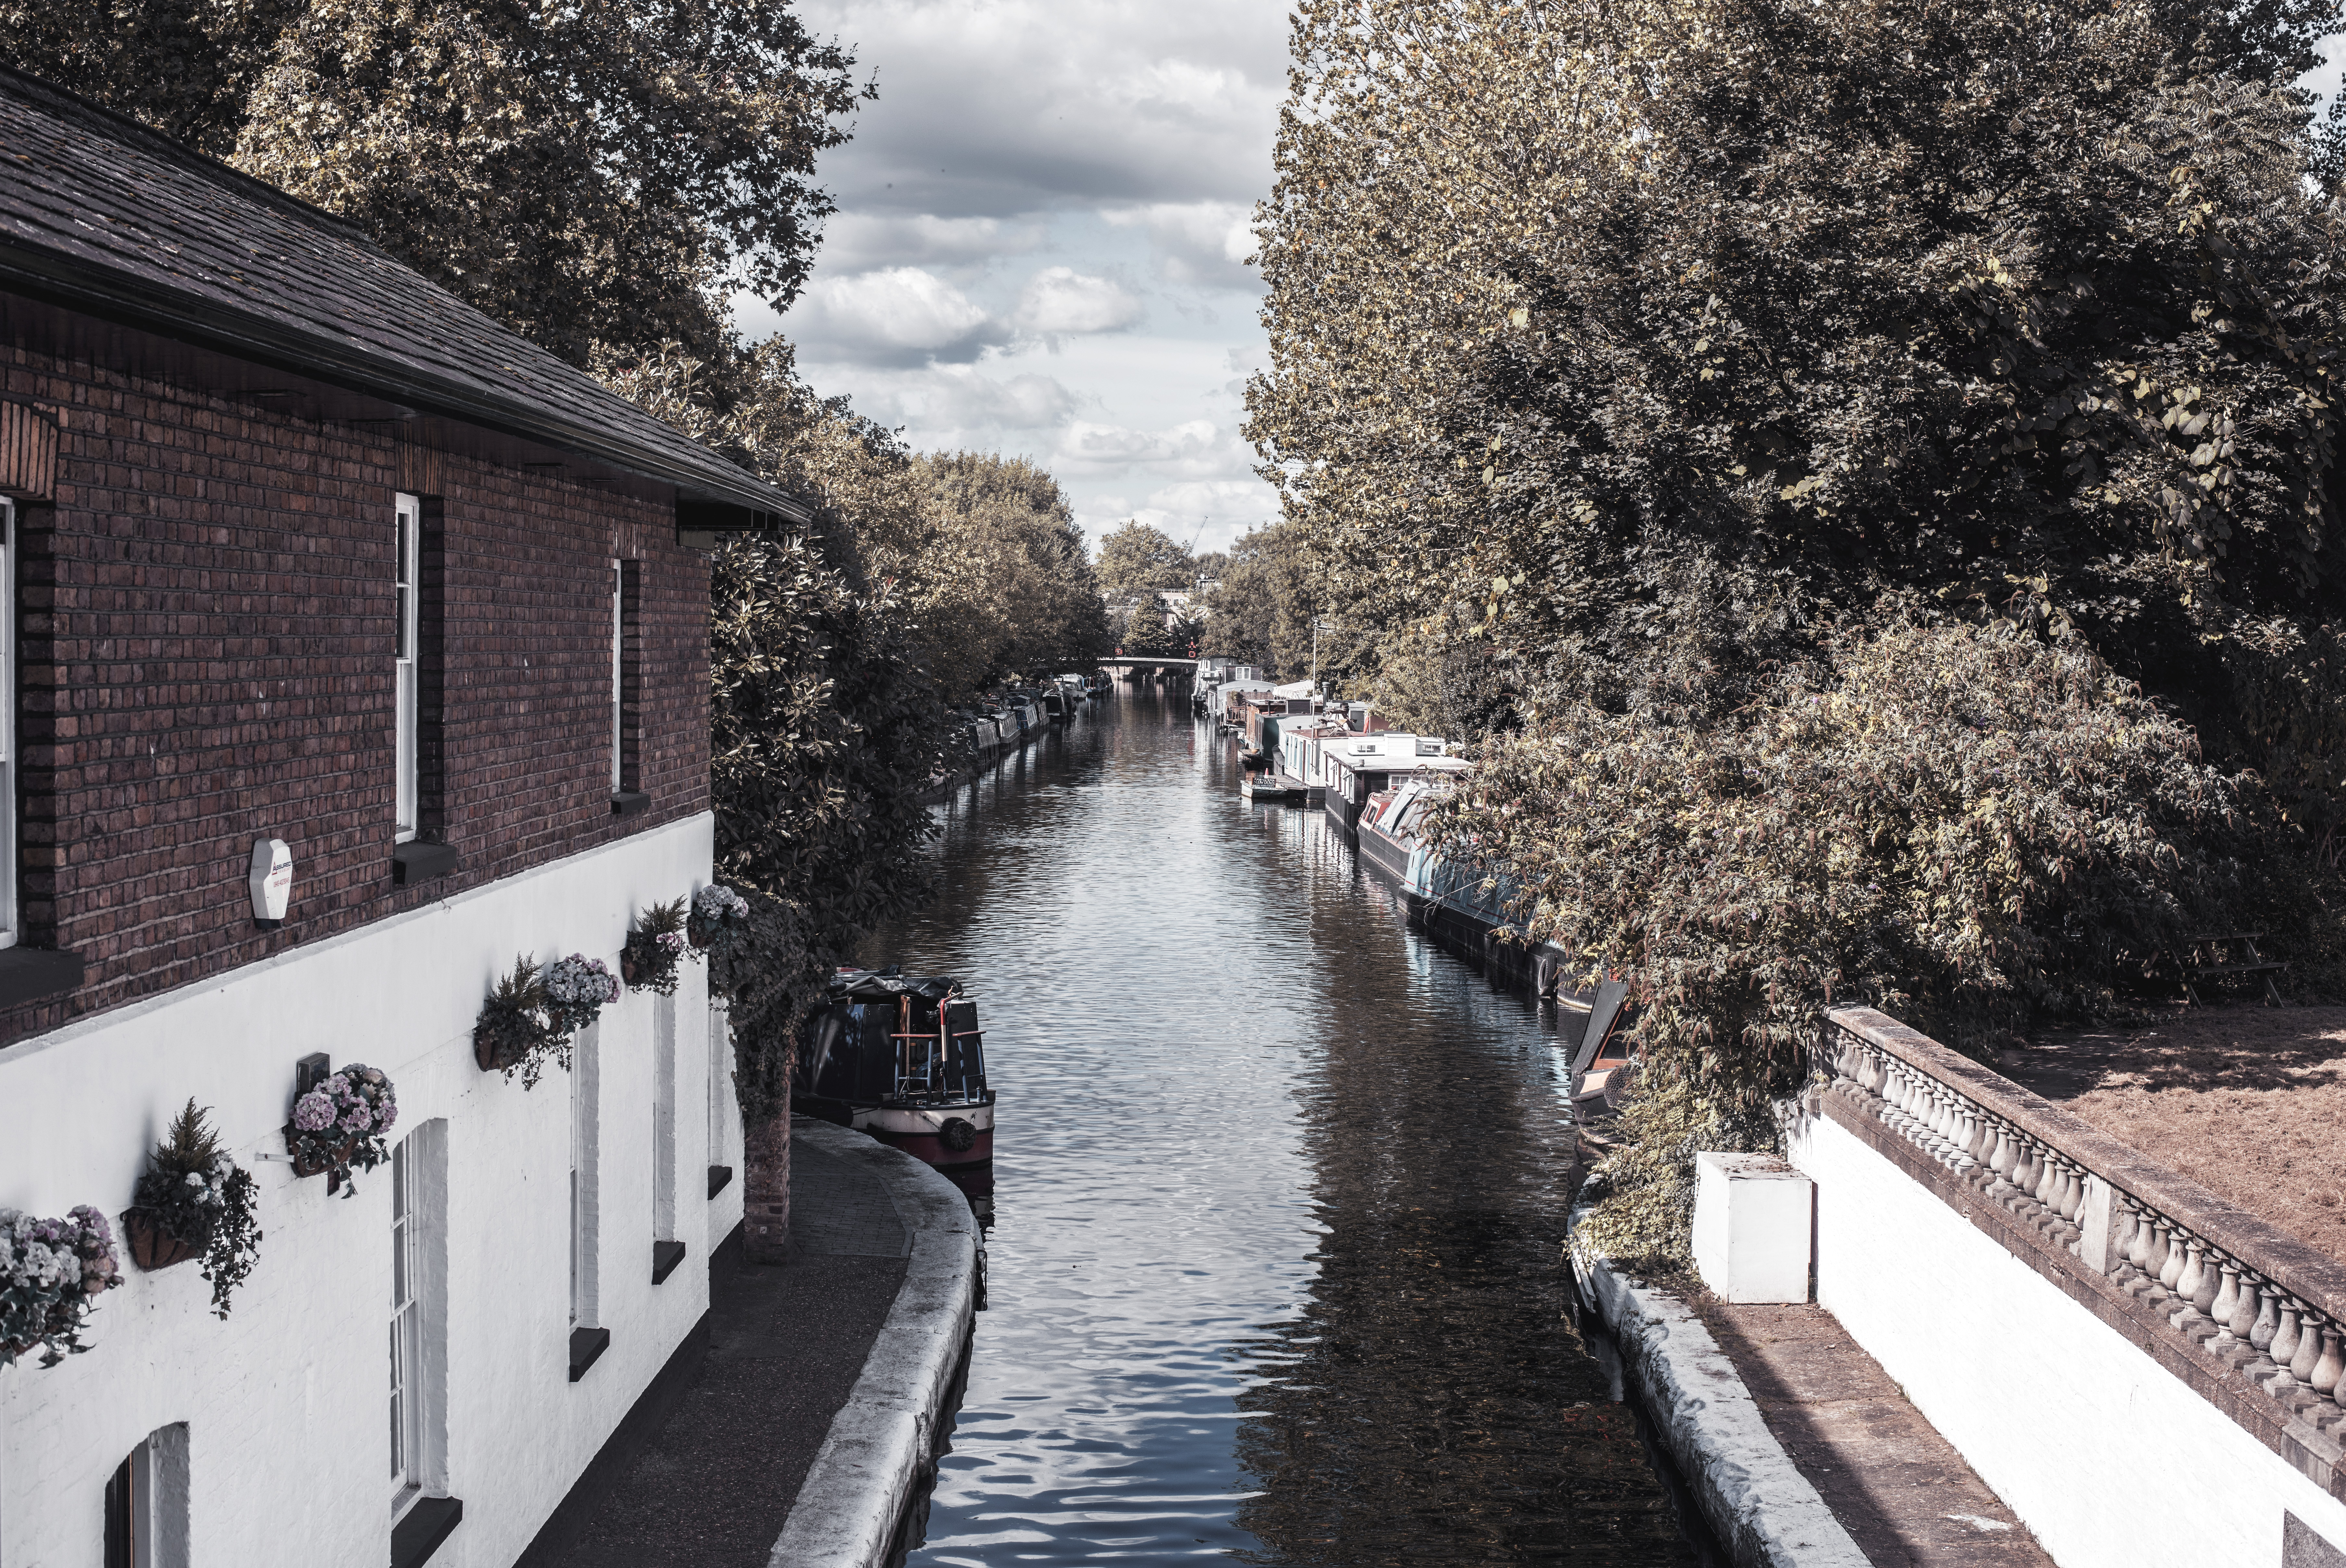 Grand Union Canal at Little Venice